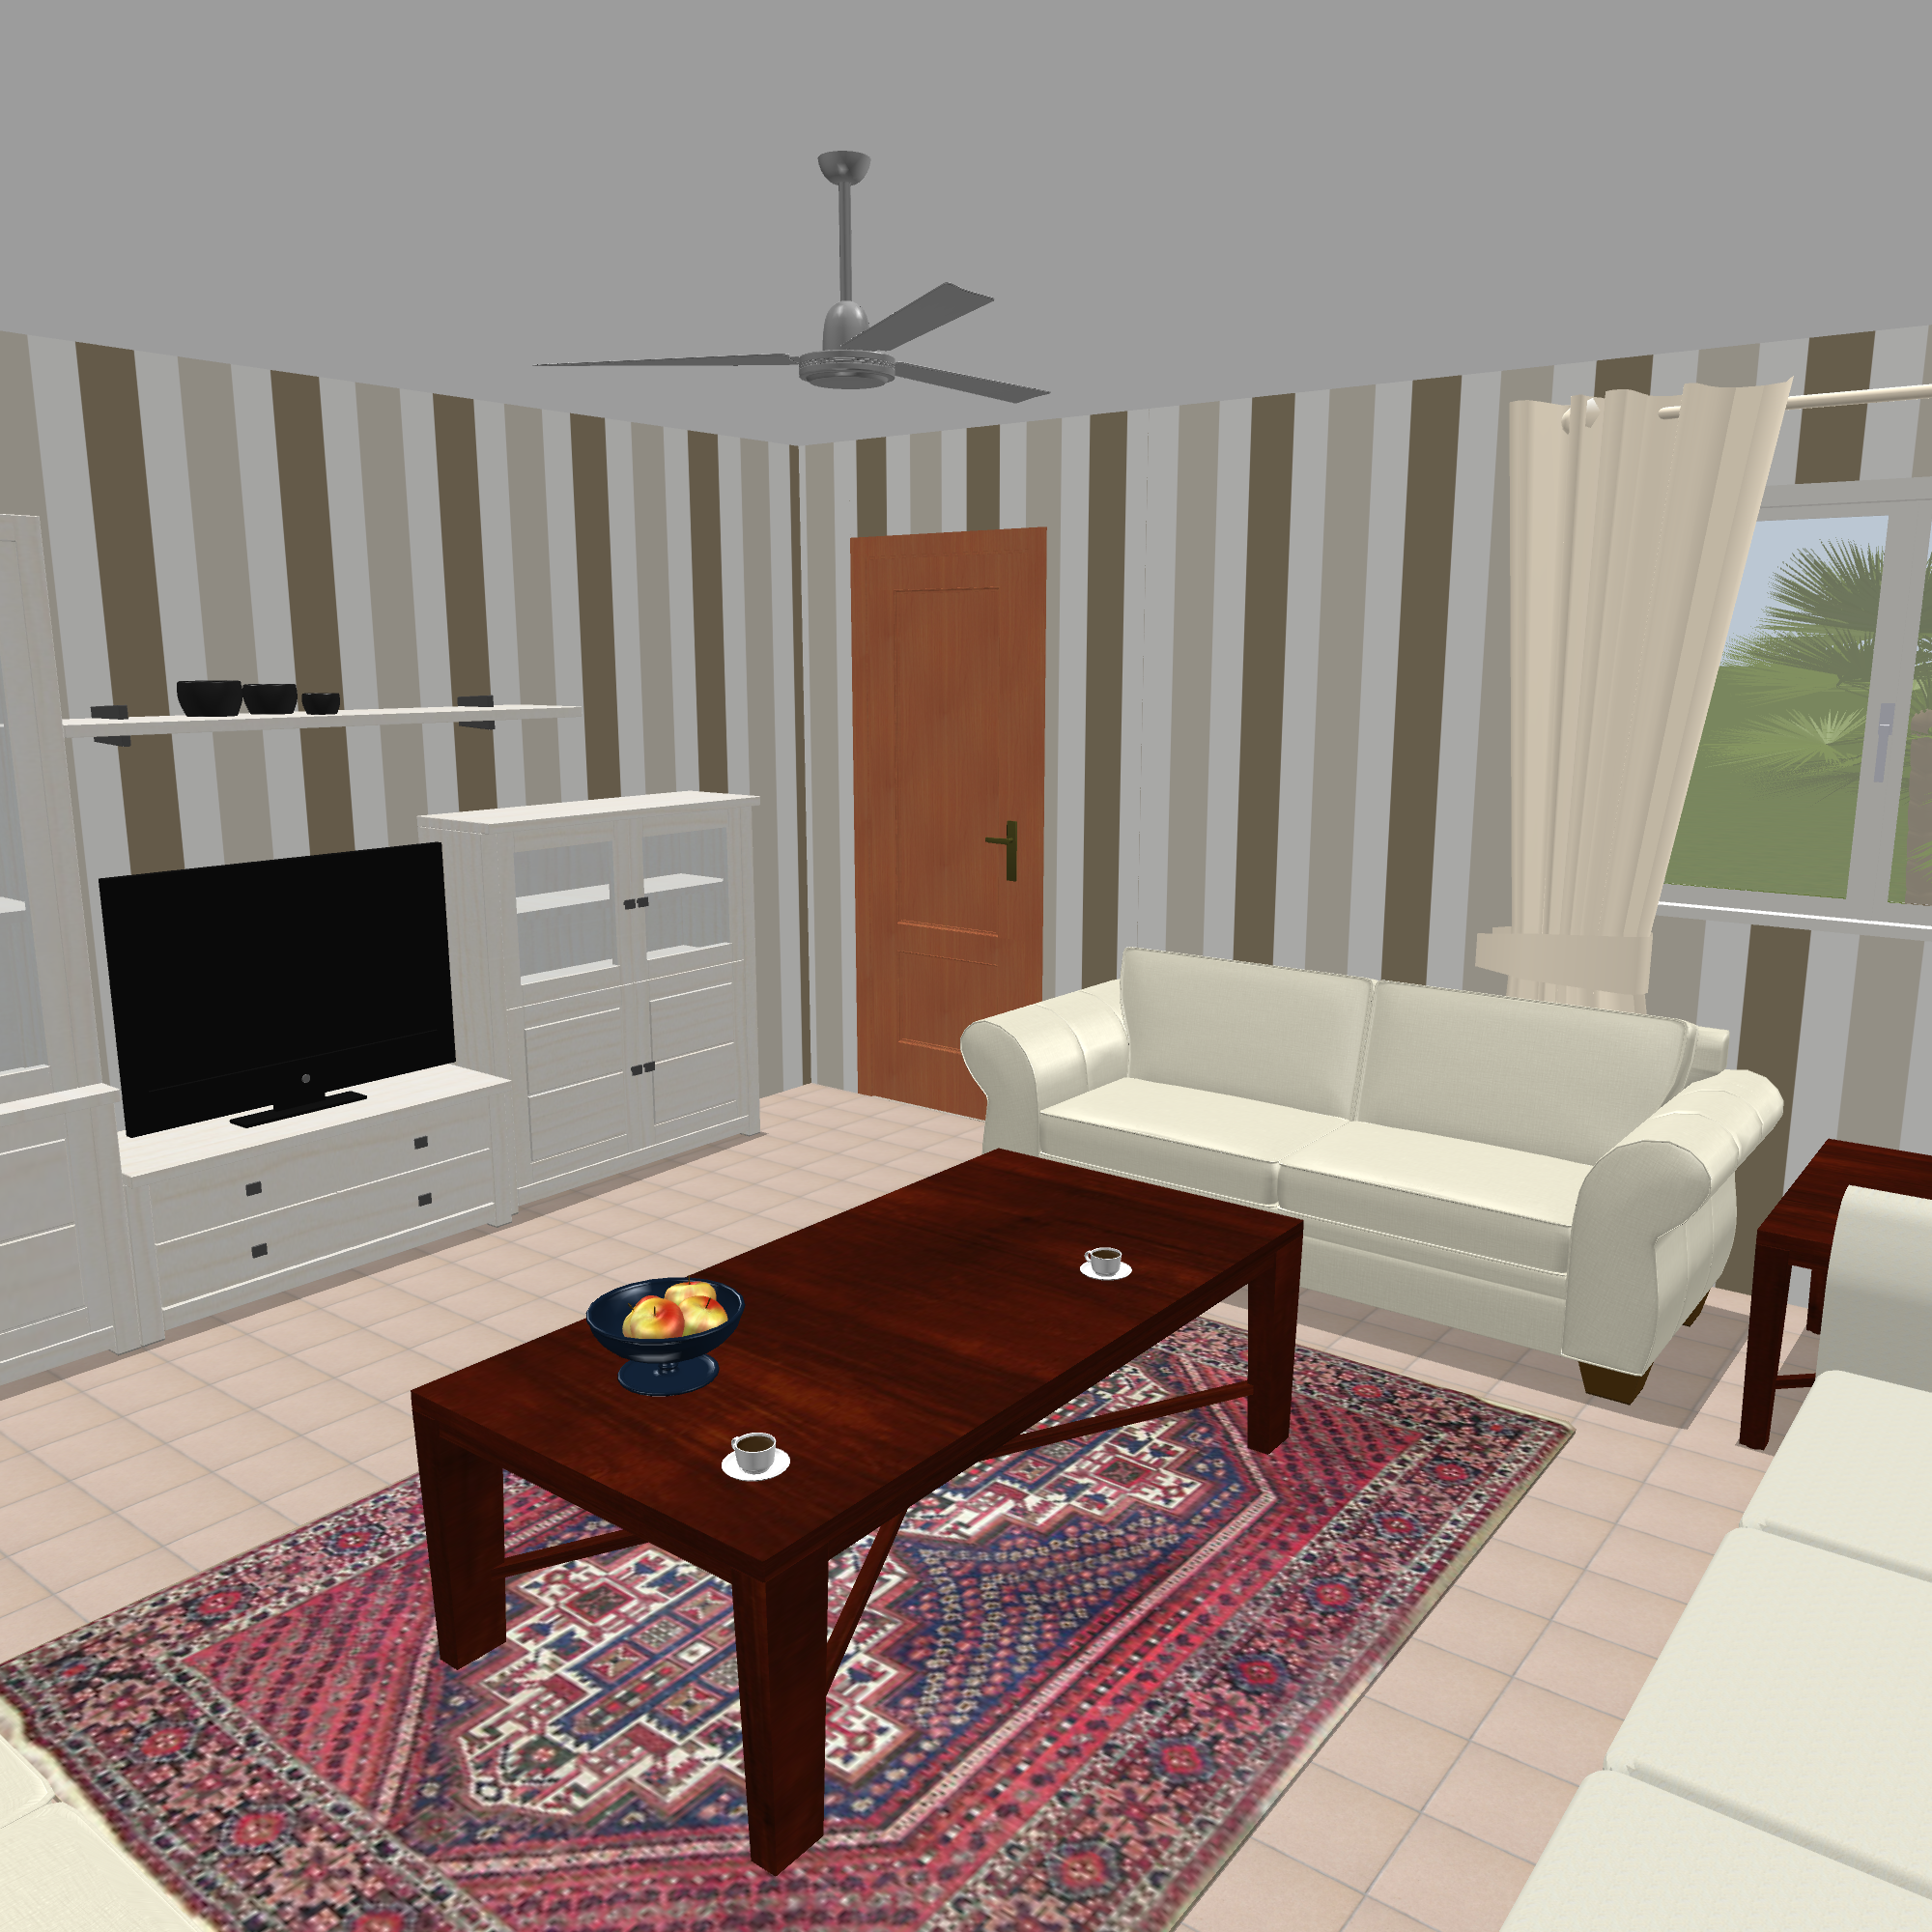 160sqm_living room.png